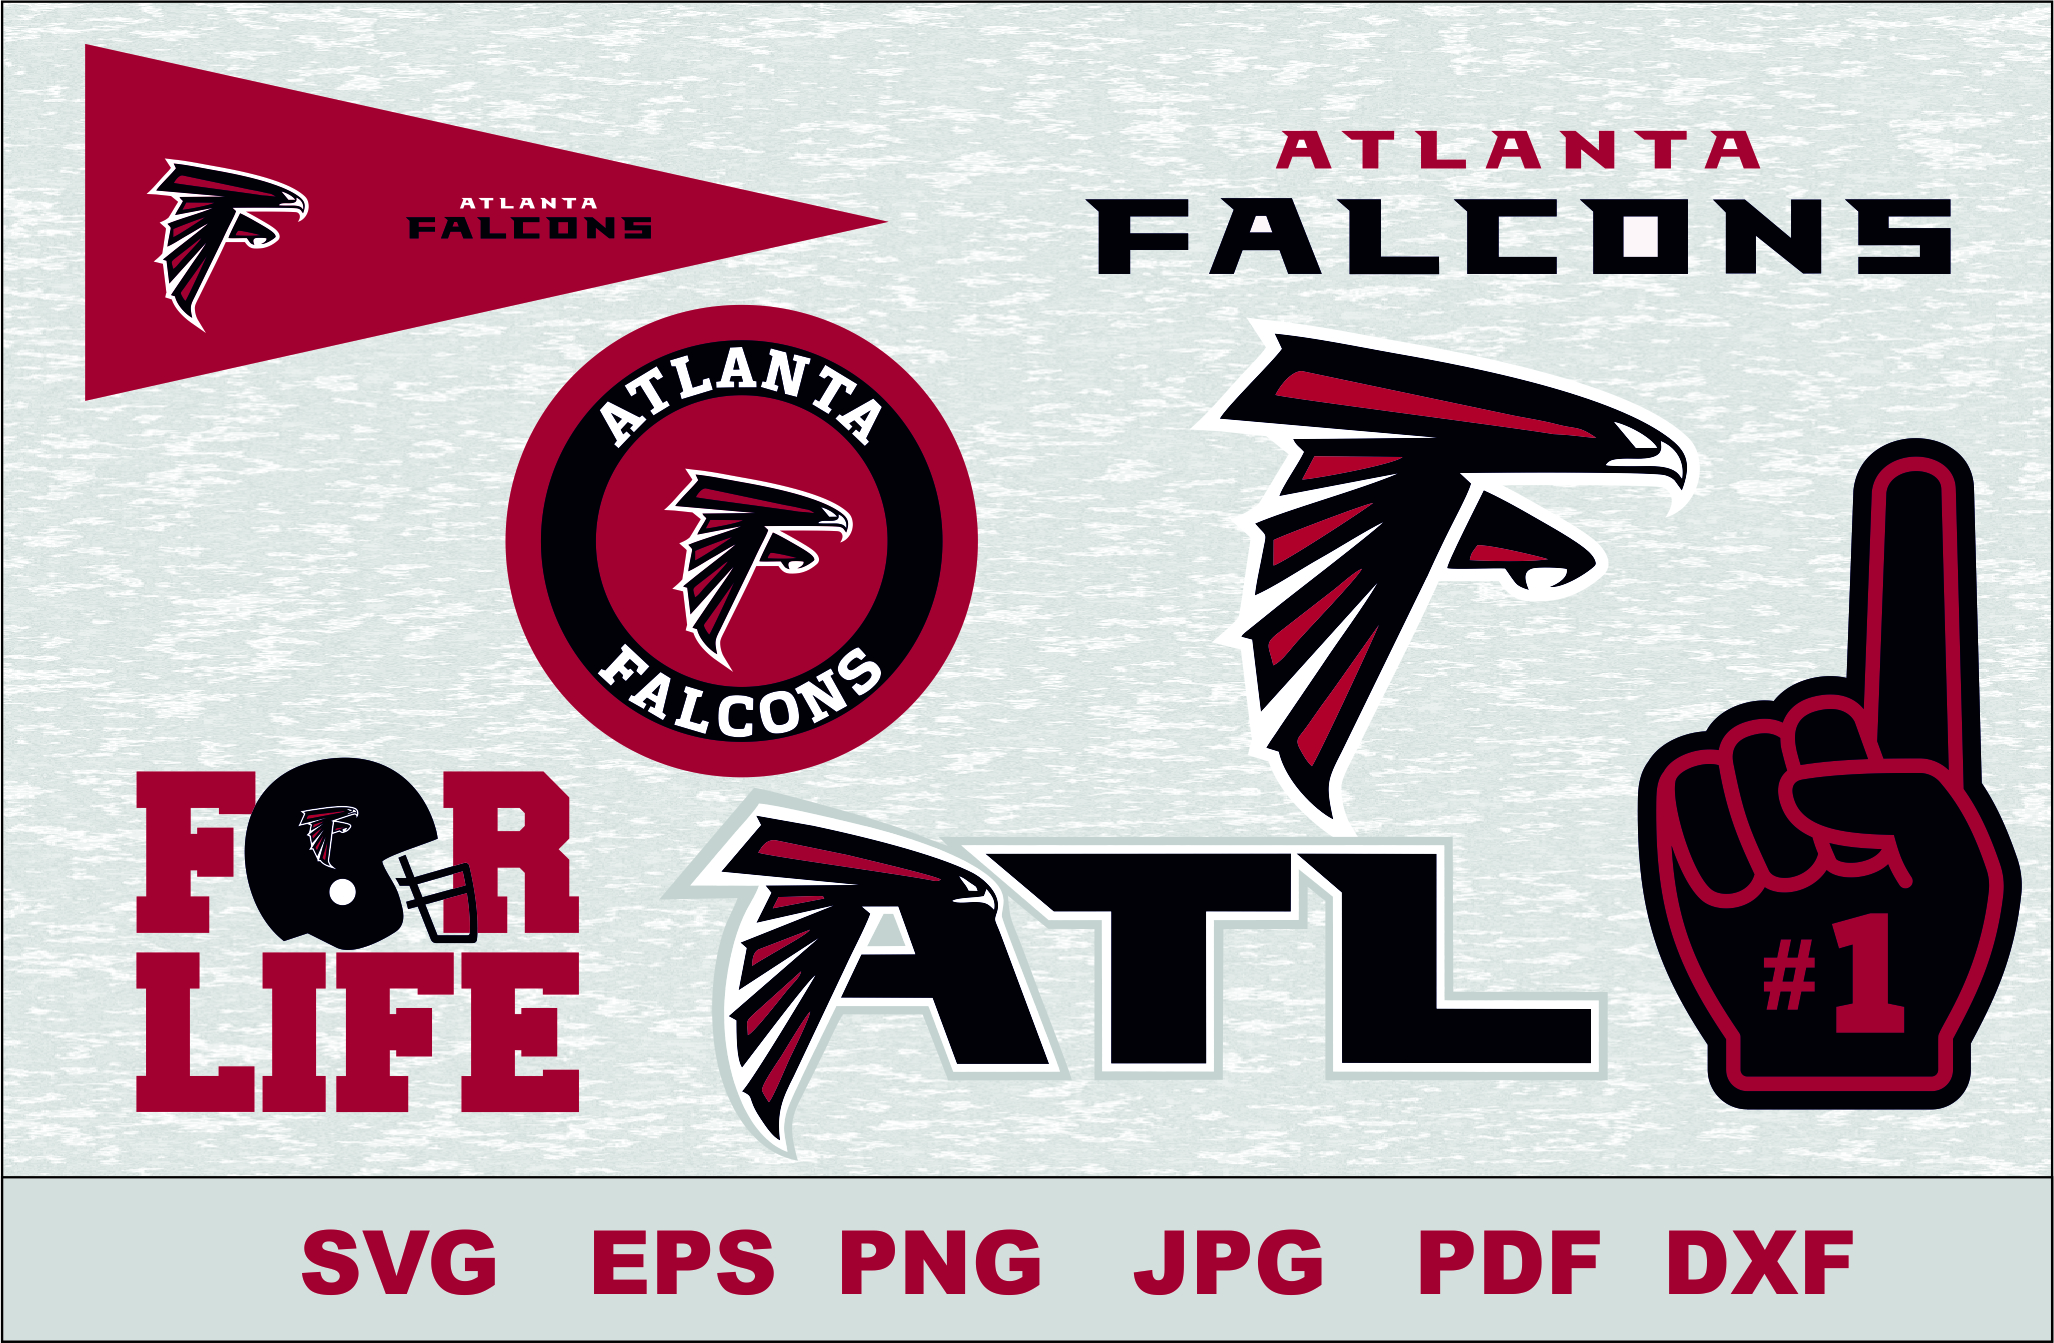 atlanta falcons svg #991, Download drawings